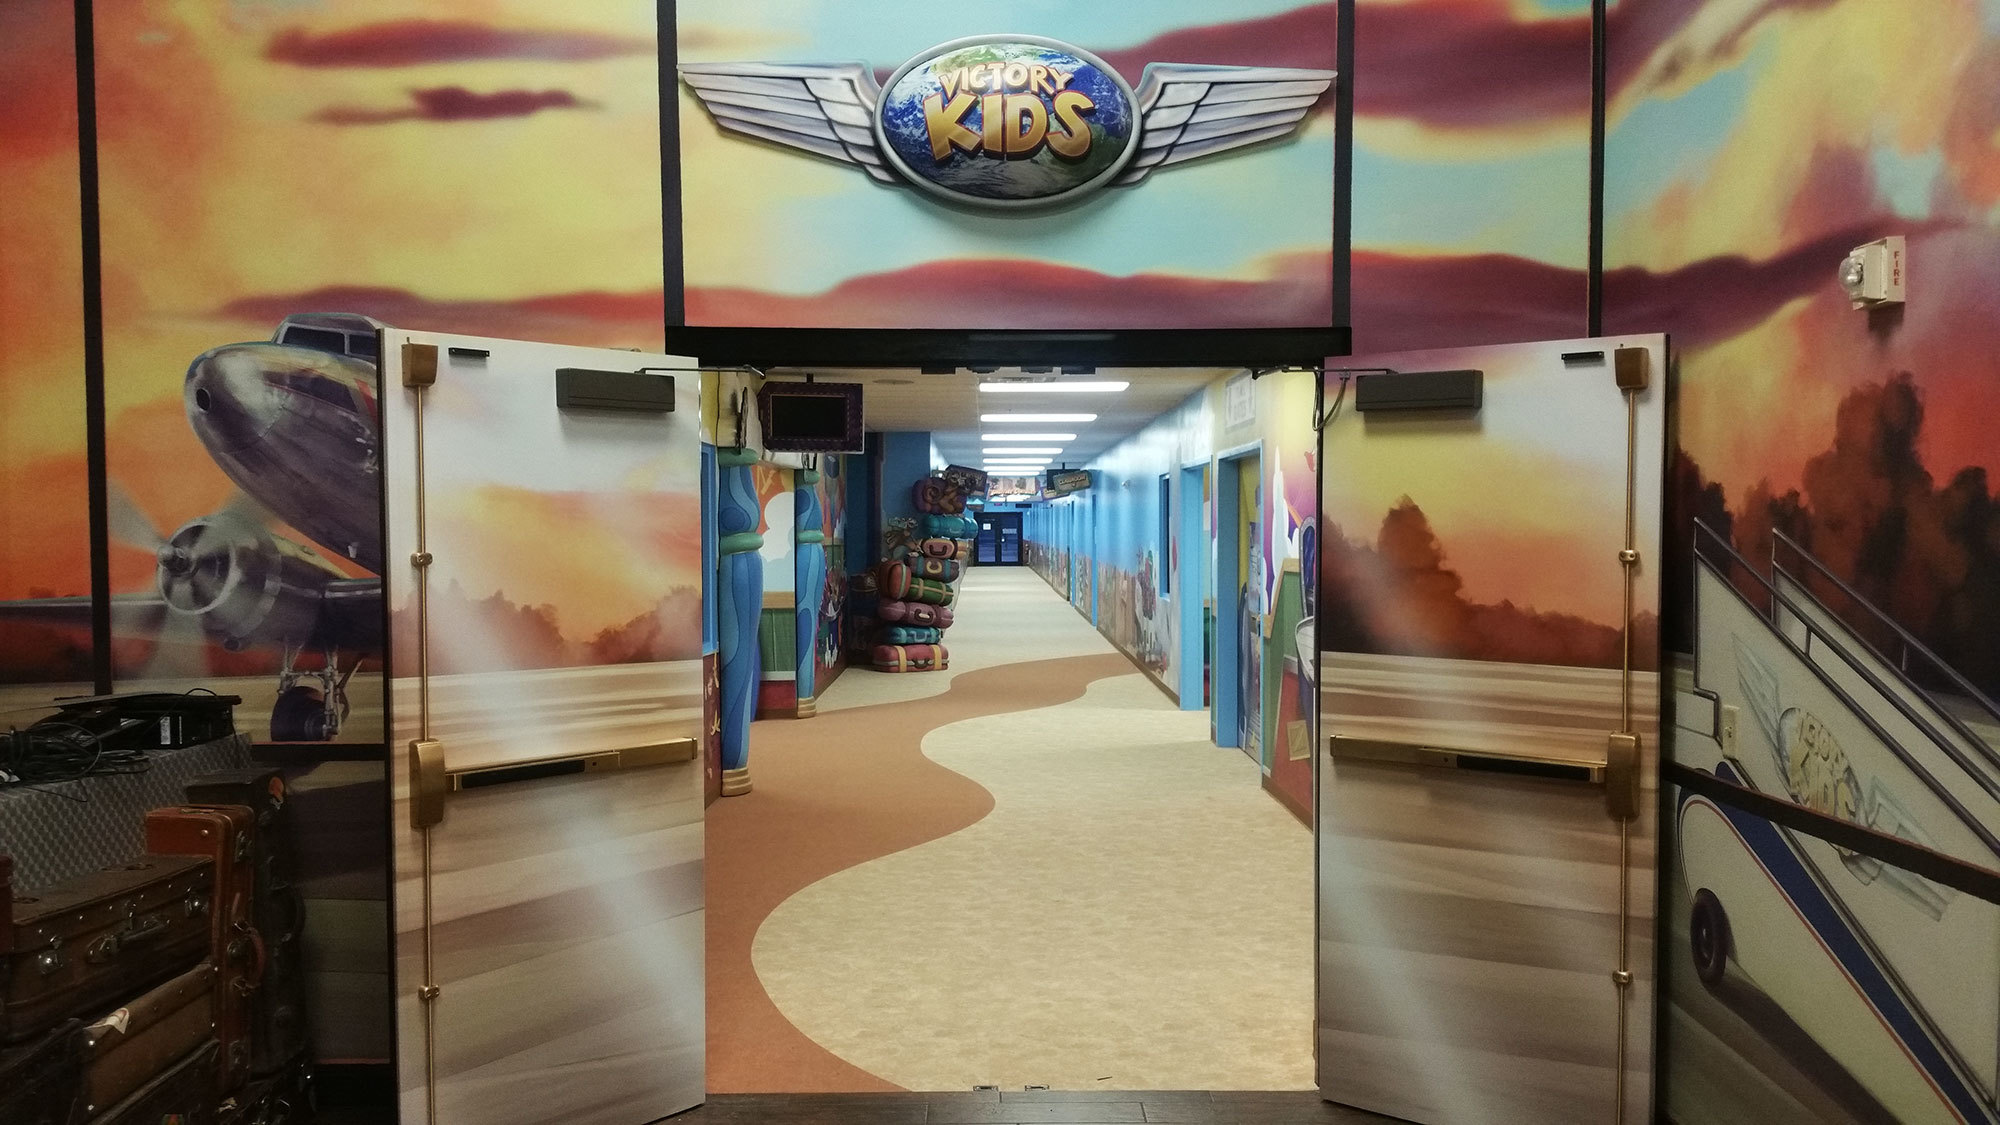 Airport and Travel Themed Environment at Victory Church Ohio